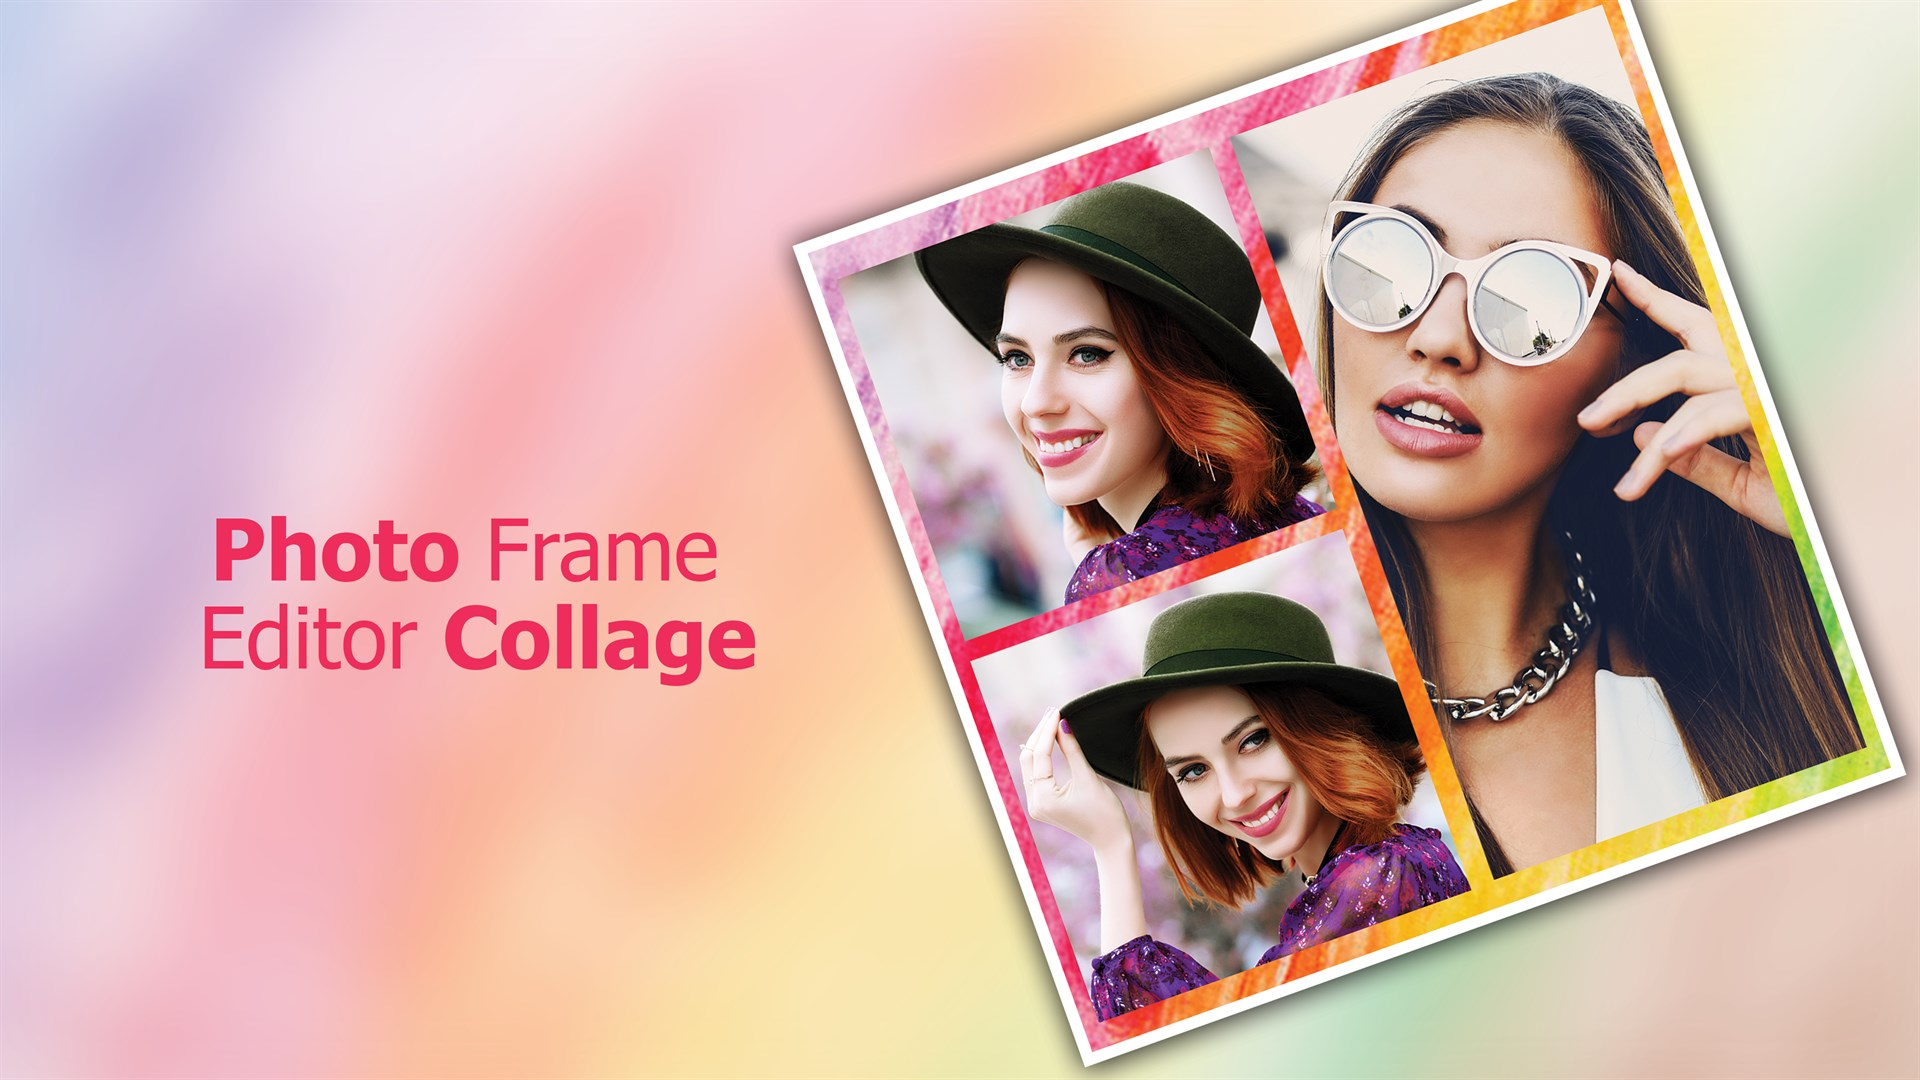 Get Photo Frame Editor Collage Microsoft Store